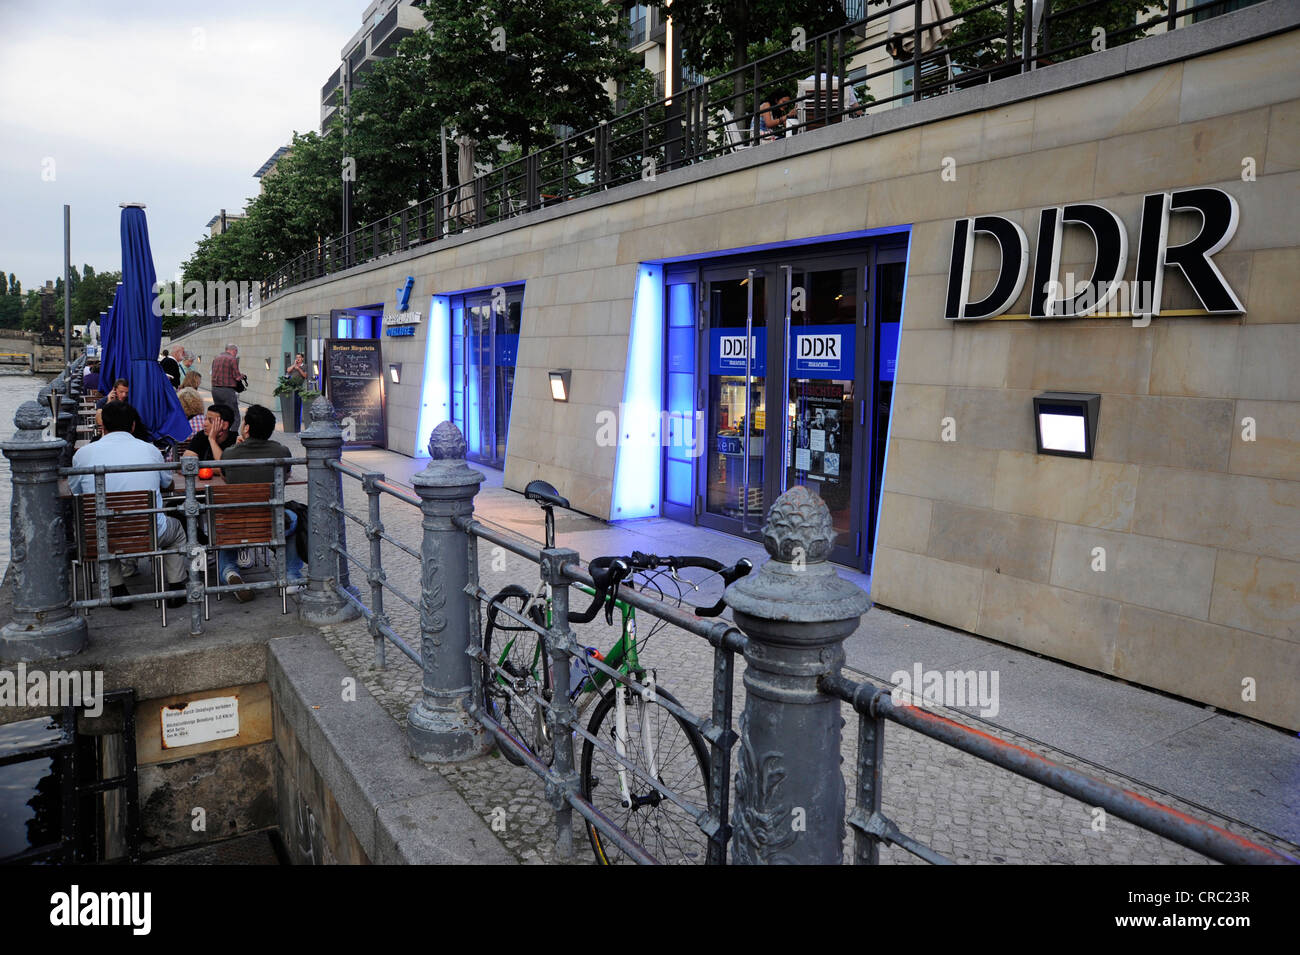 DDR Museum, museum of the GDR, on the Spree riverside, Mitte district of Berlin, Germany, Europe - Stock Image